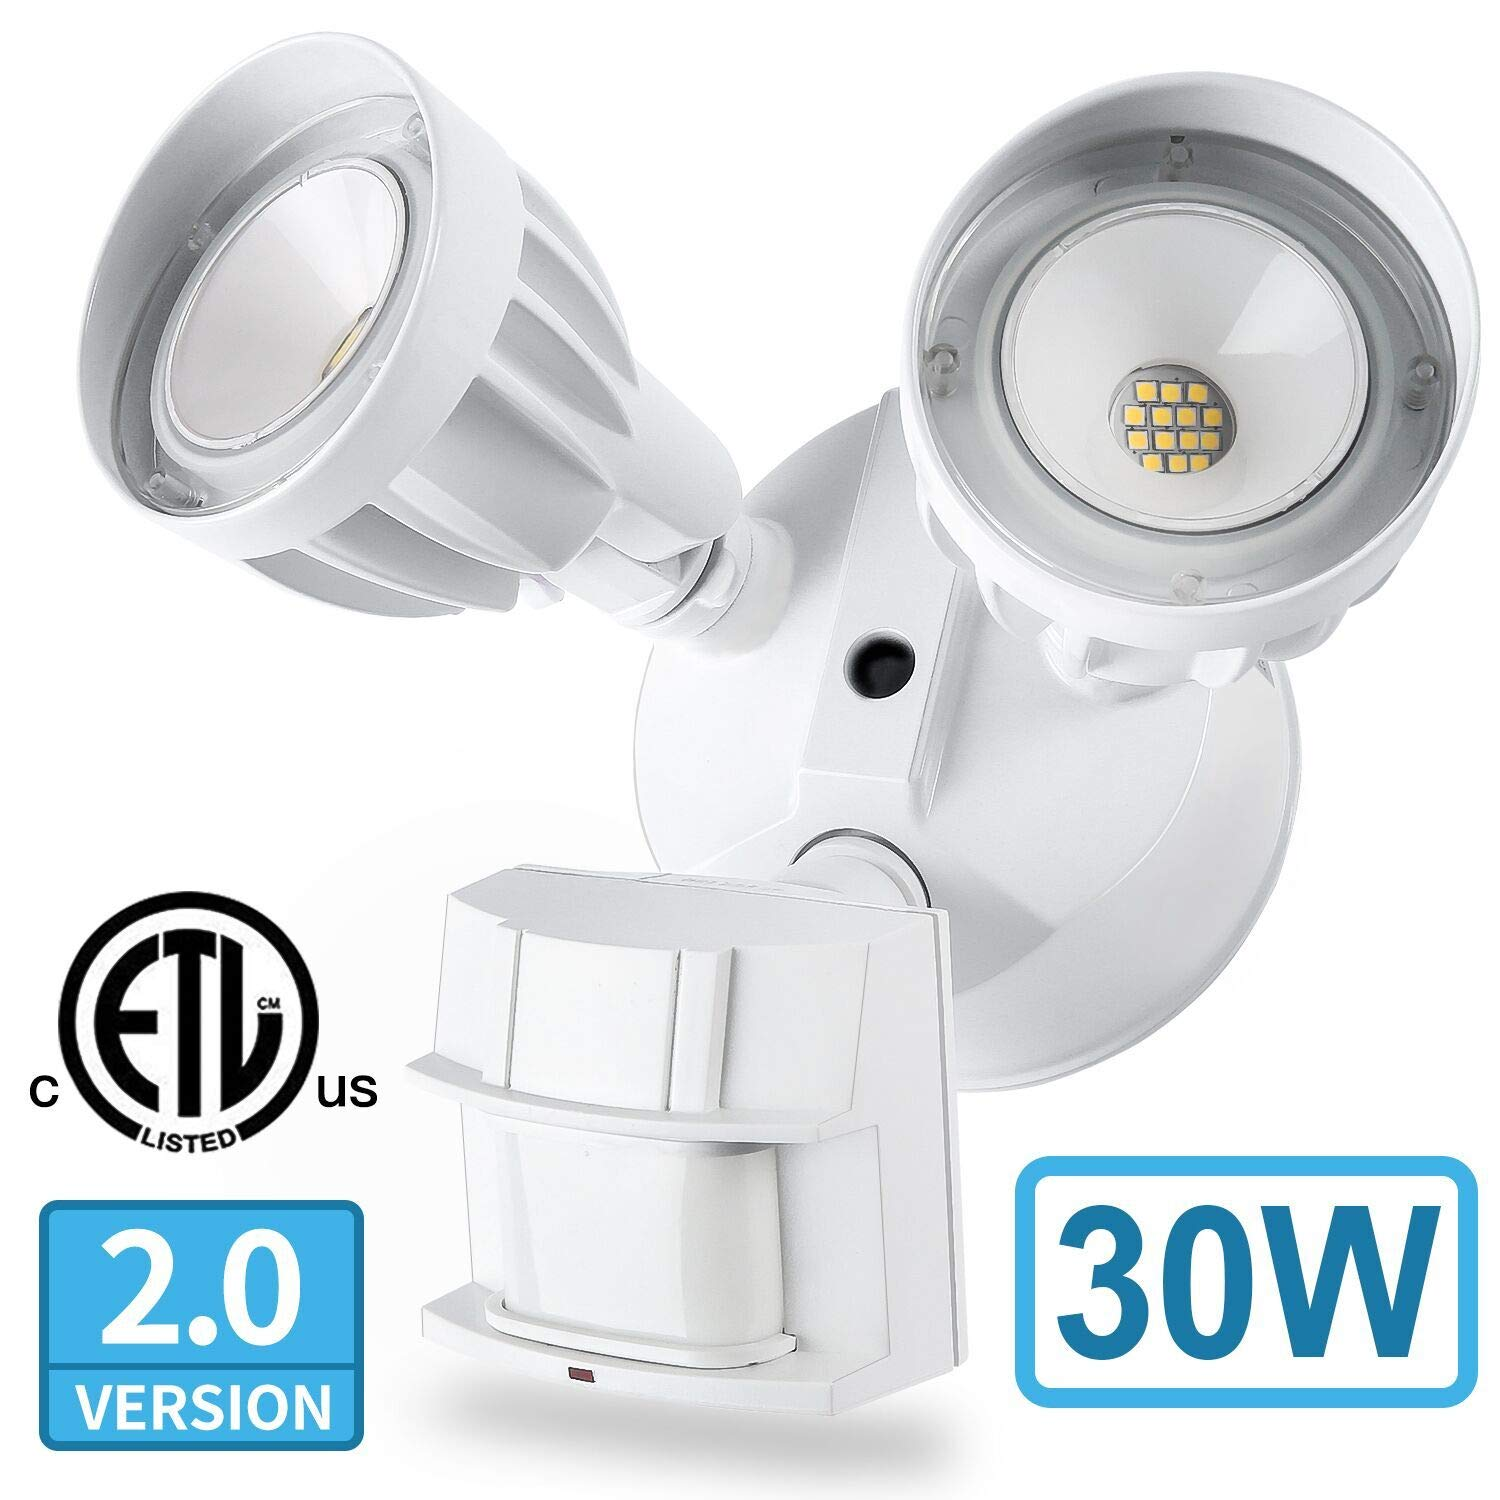 Amico 30W LED Security Light Motion Outdoor, Motion Sensor Light Outdoor, Dual-Head, 2500LM 5000K Waterproof IP65, ETL Flood Lights